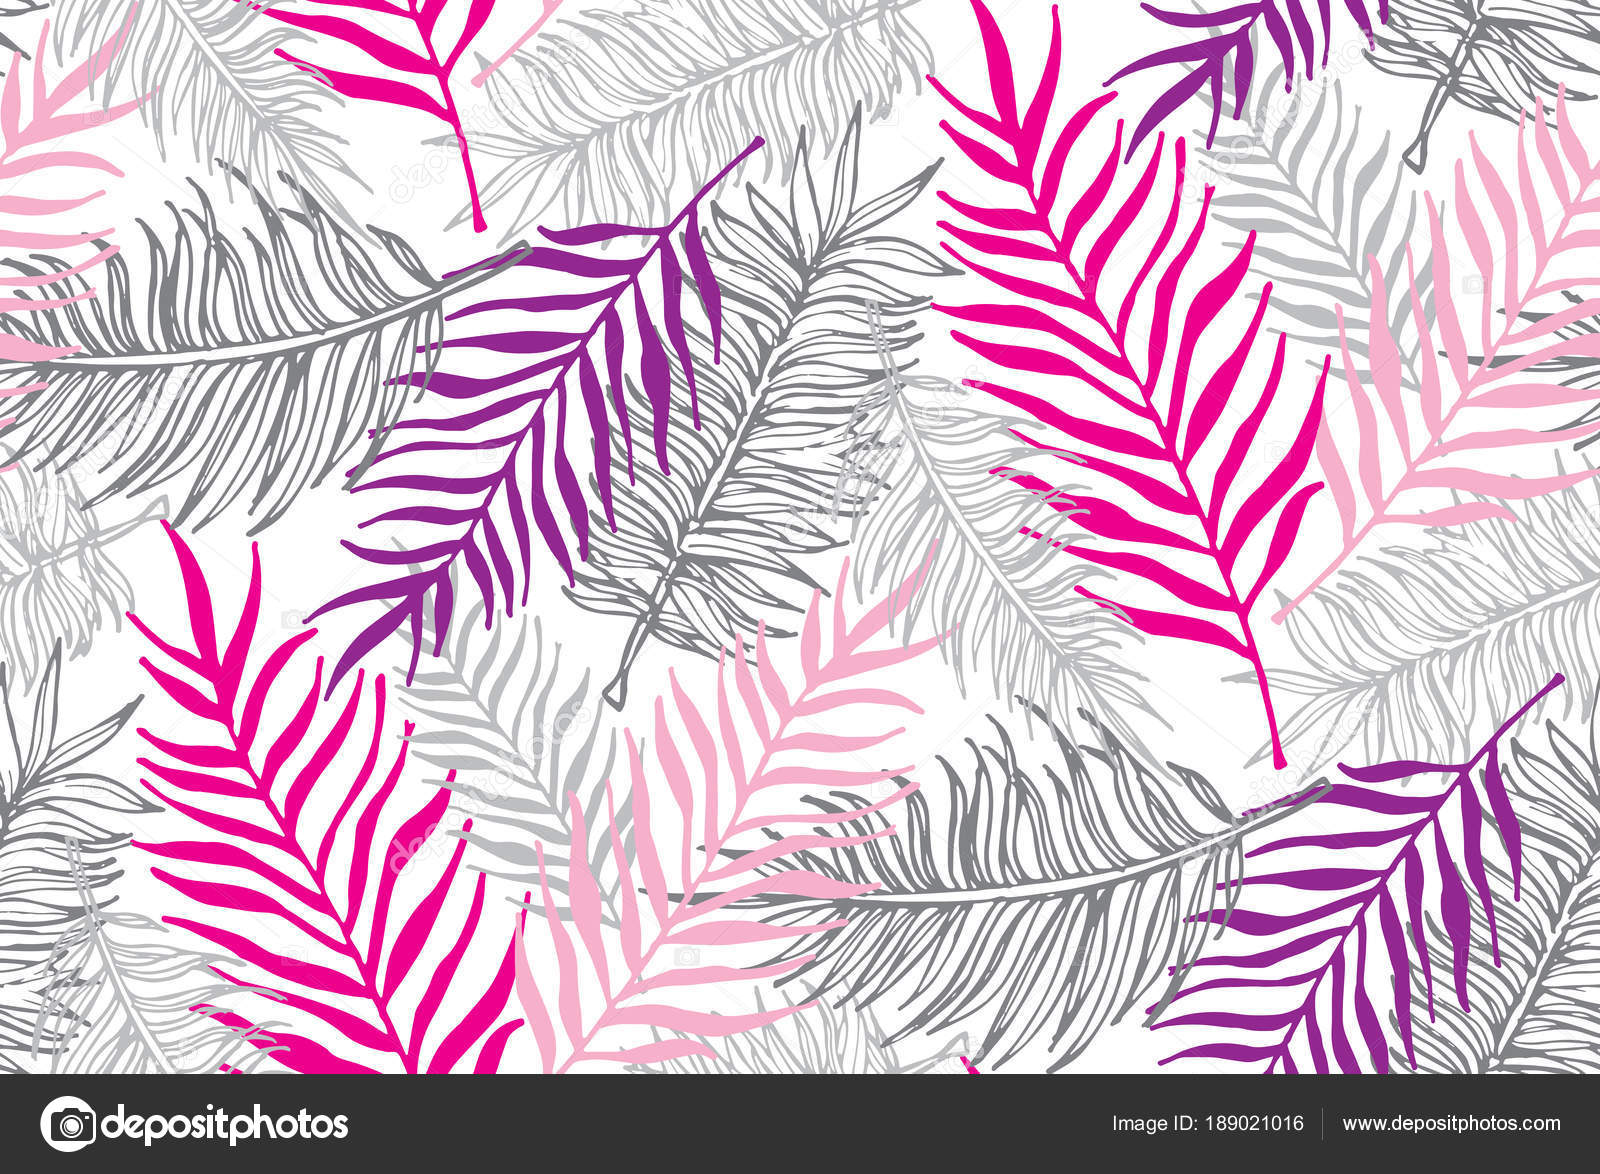 hand drawn doodle palm tree leaves pattern stock vector jane55